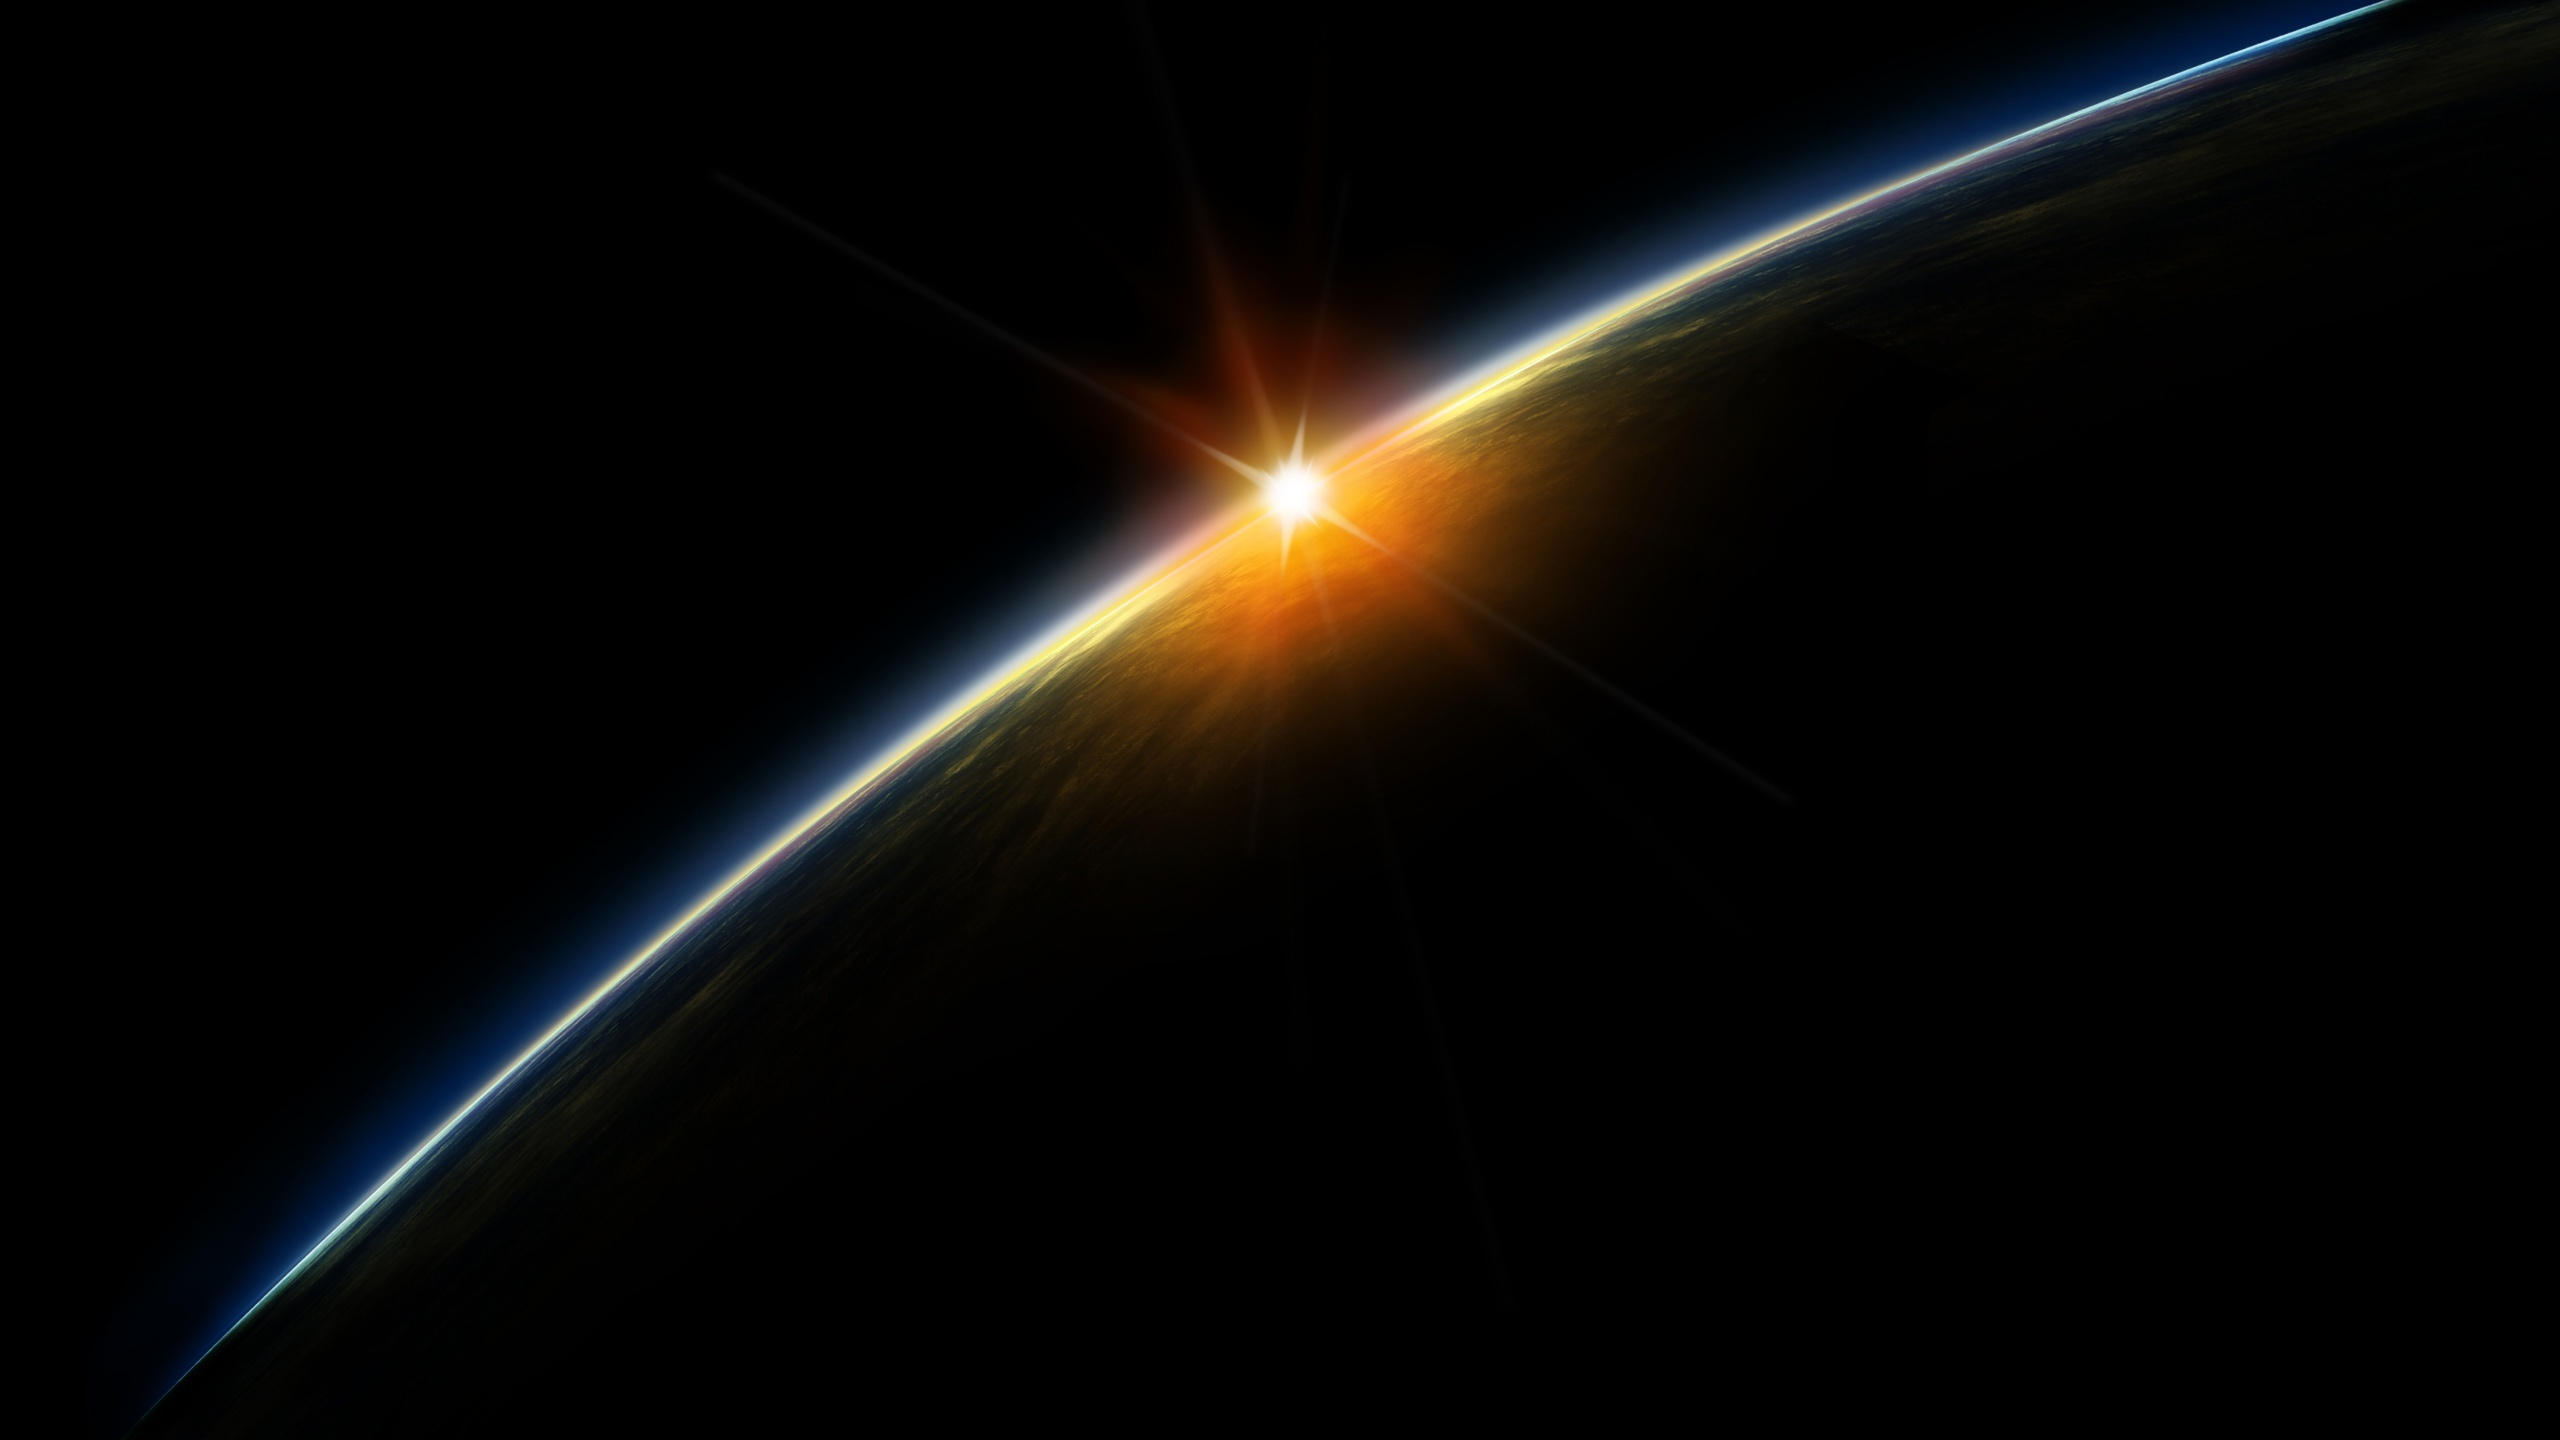 sunrise from space hd - photo #8